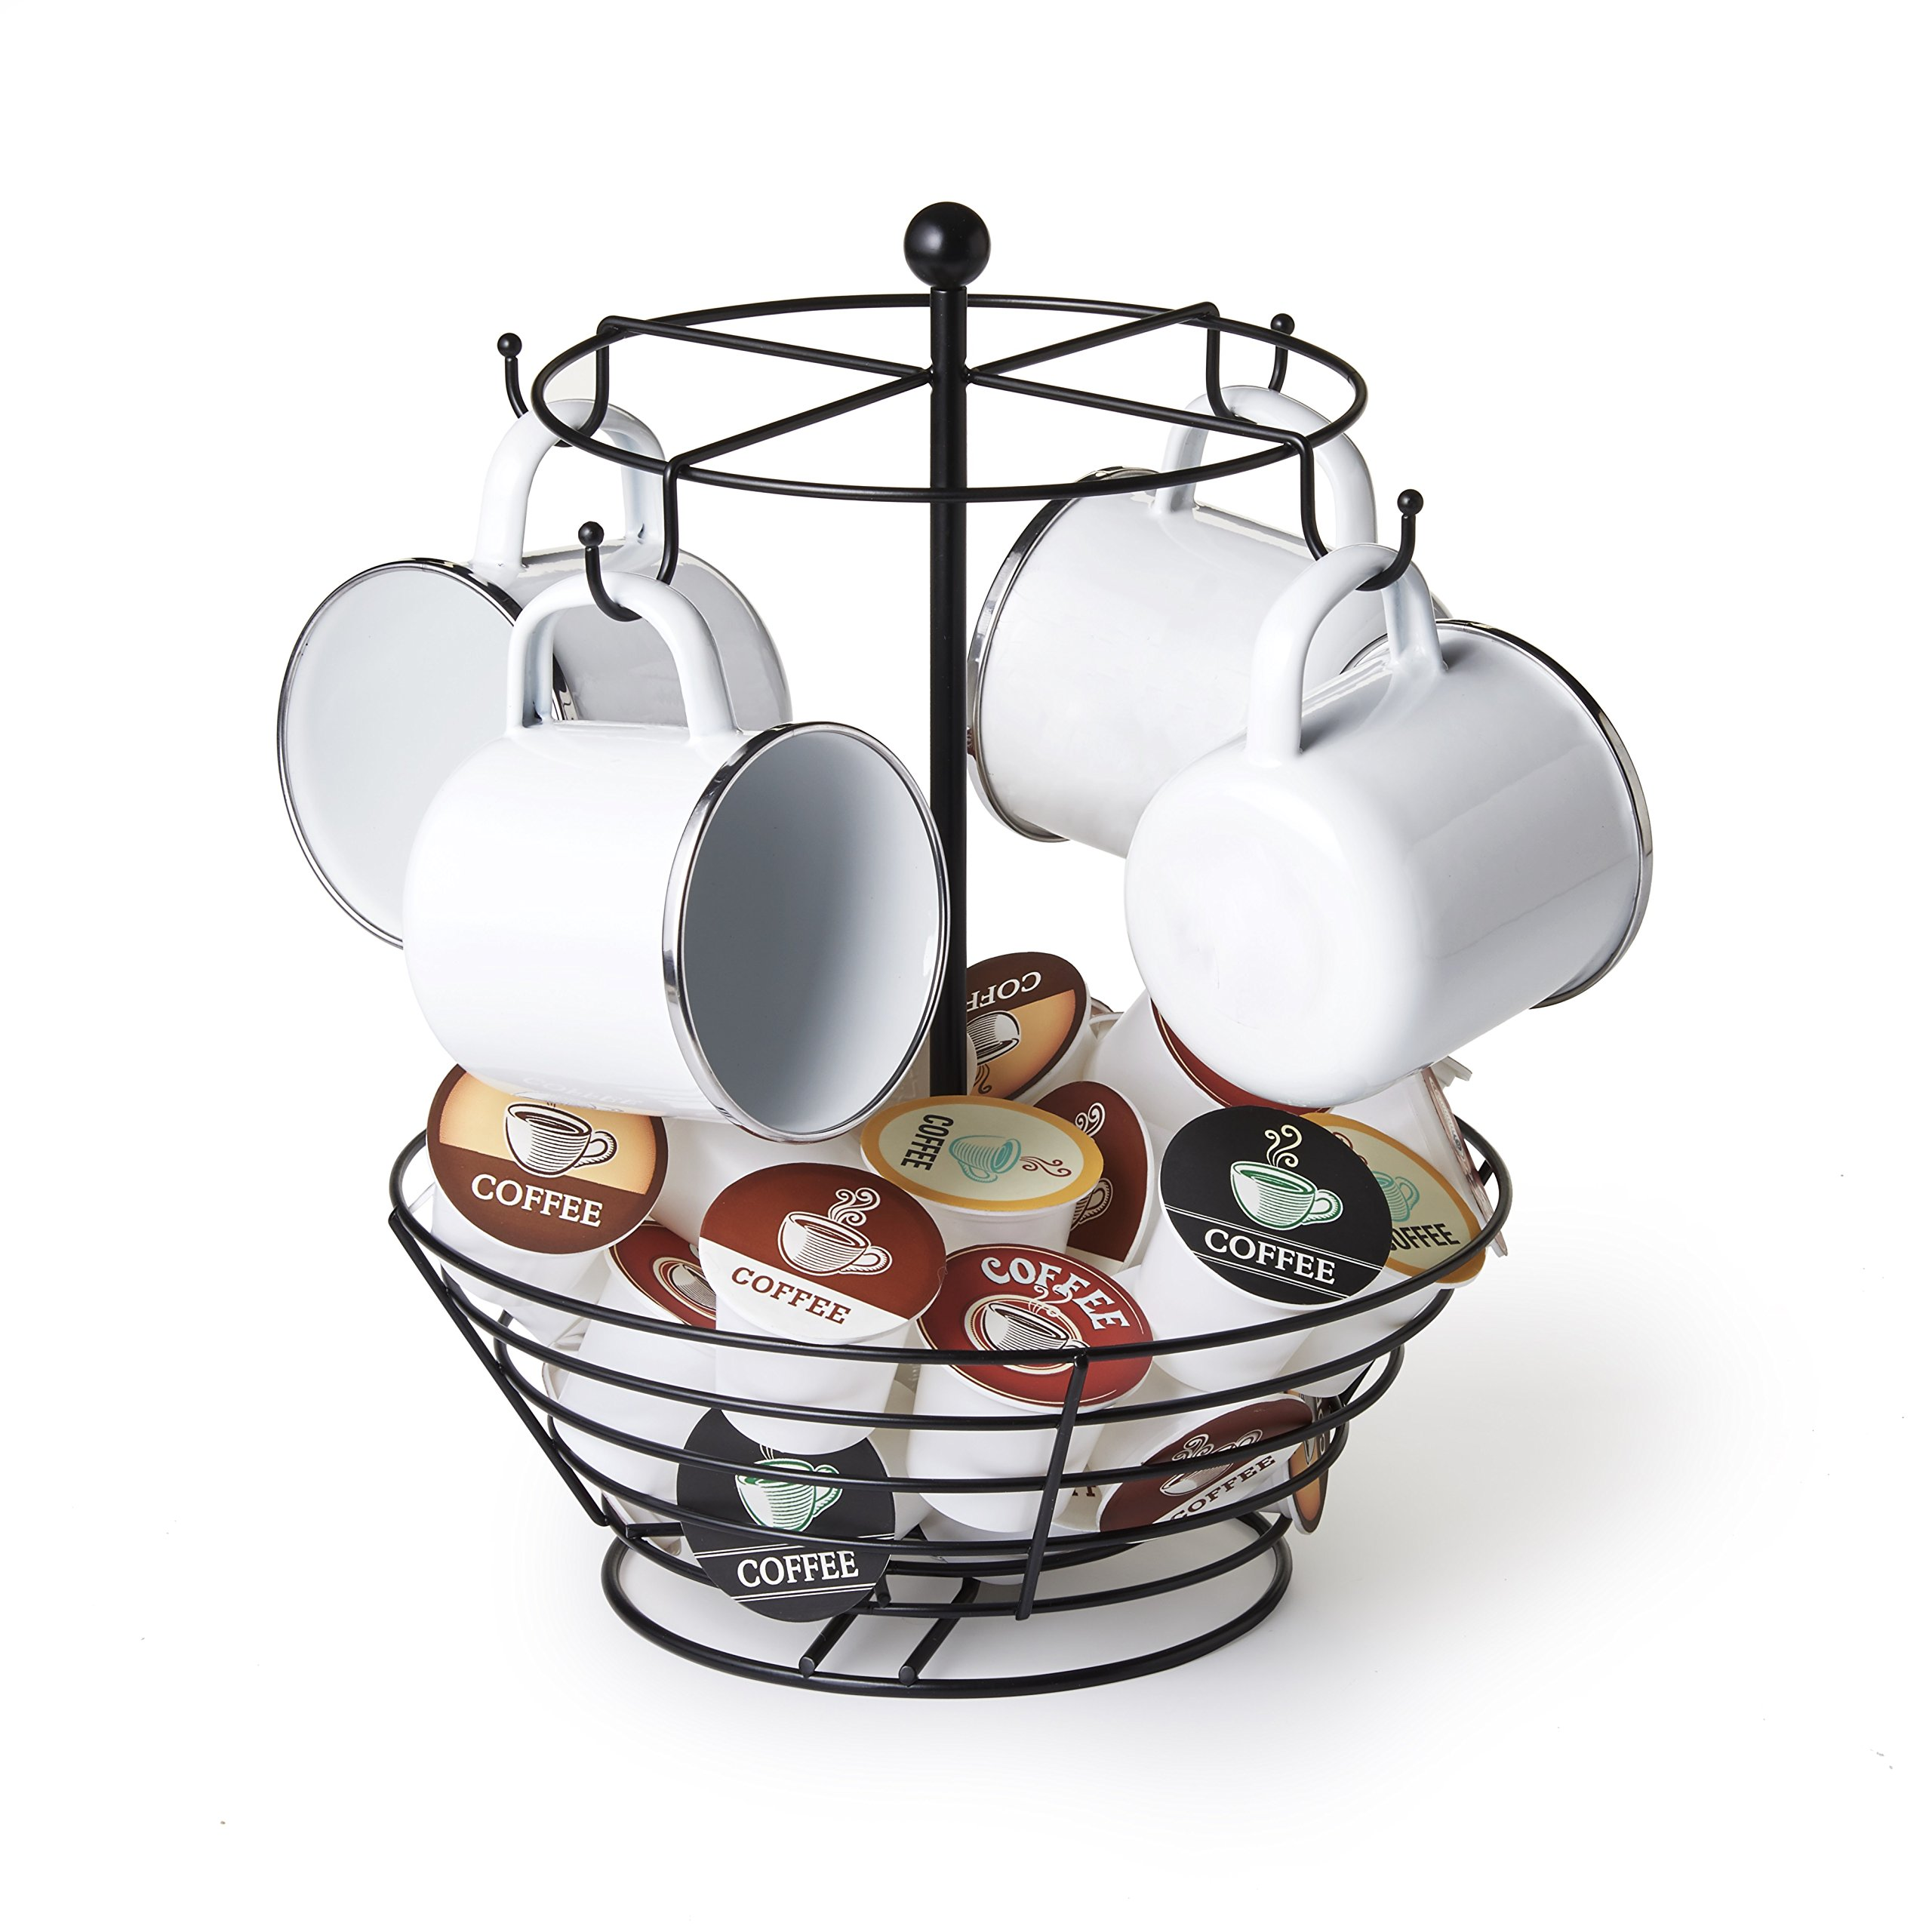 NIFTY 8830 Coffee Cup Carousel and Storage Basket, One Size, Black